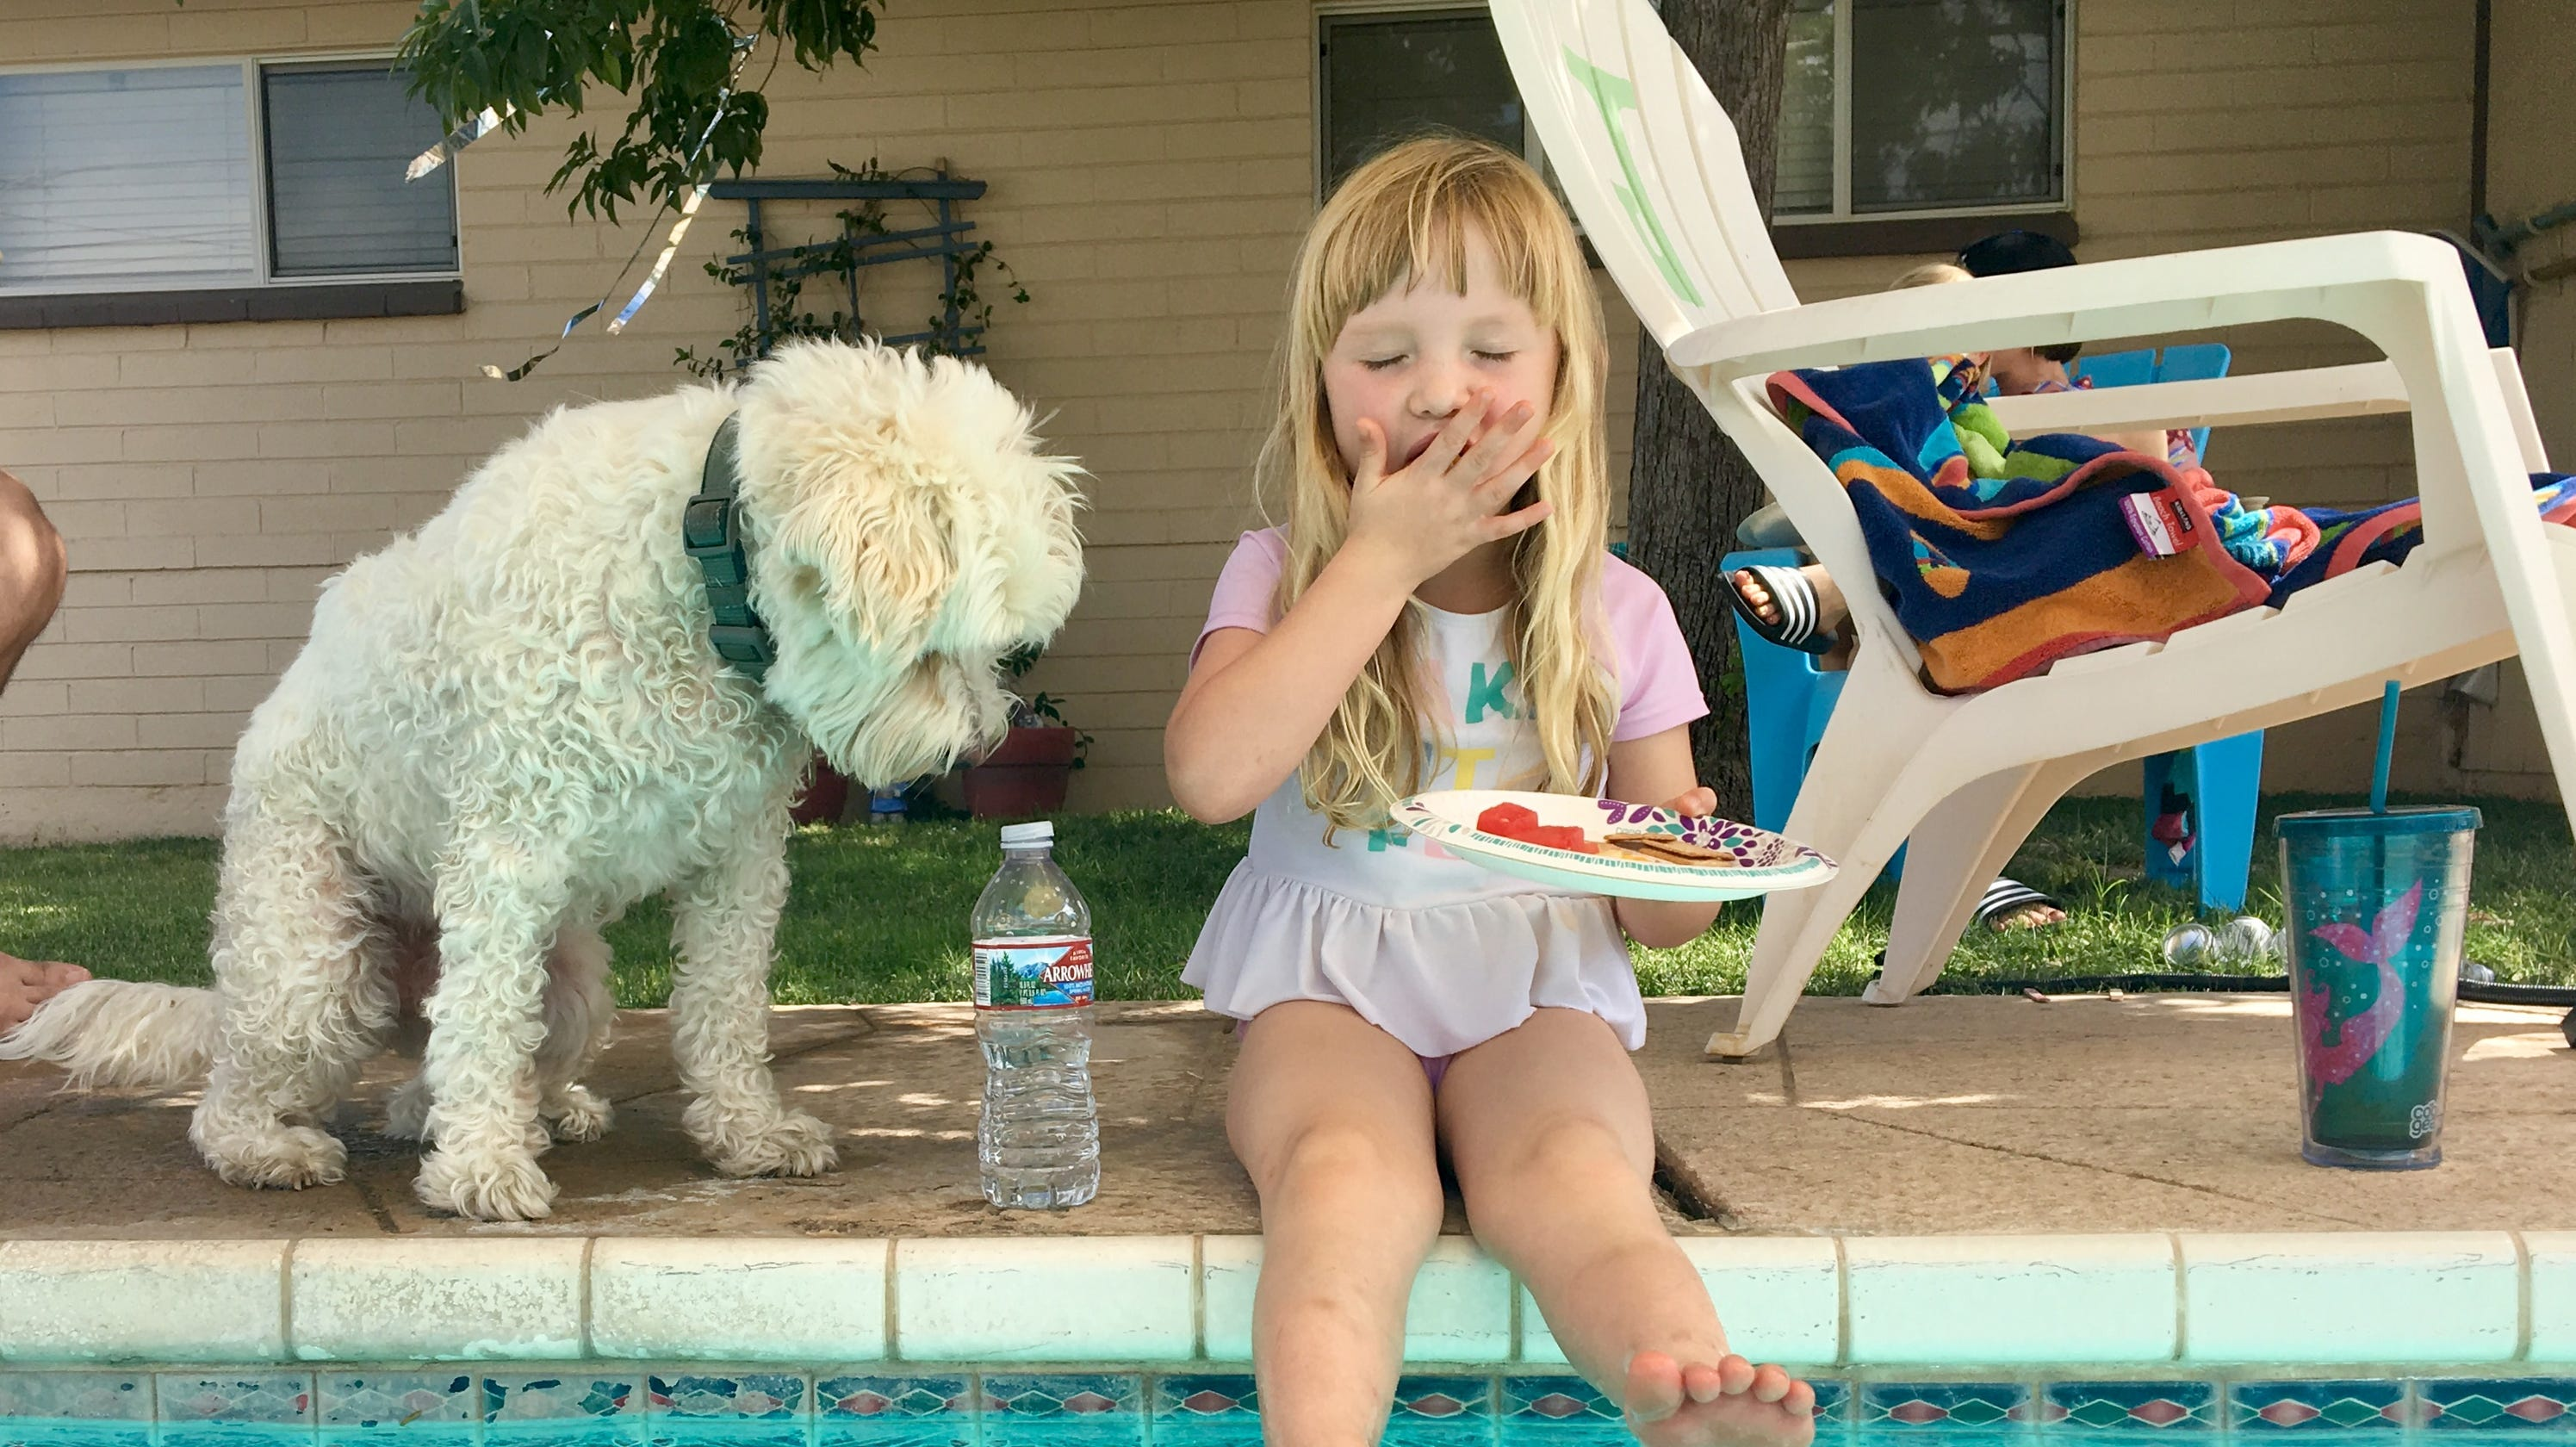 As July 4 skies light up, throw a puppy paw-ty to distract dogs from fireworks